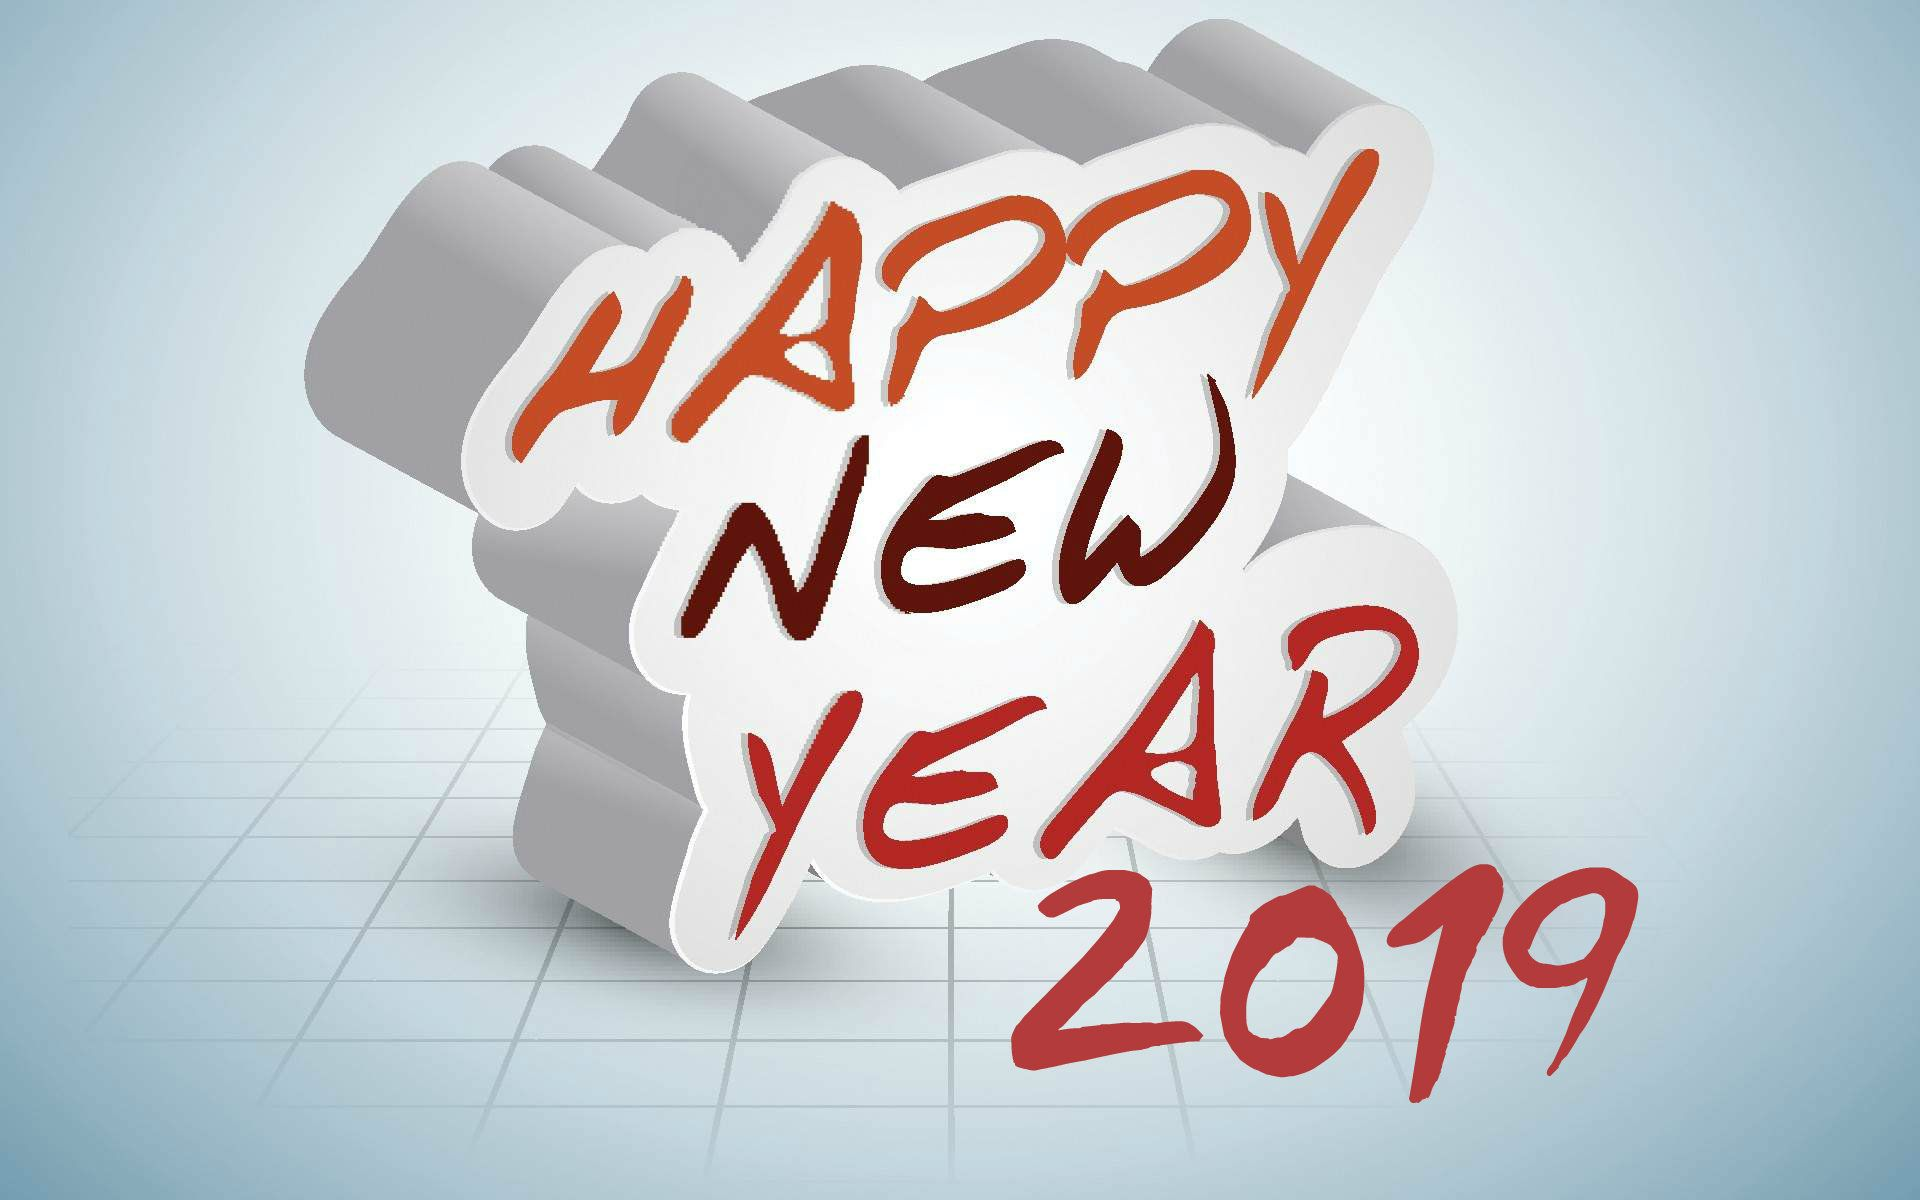 Goodbye 2018 Welcome 2019 New Year Image, Messages & SMS